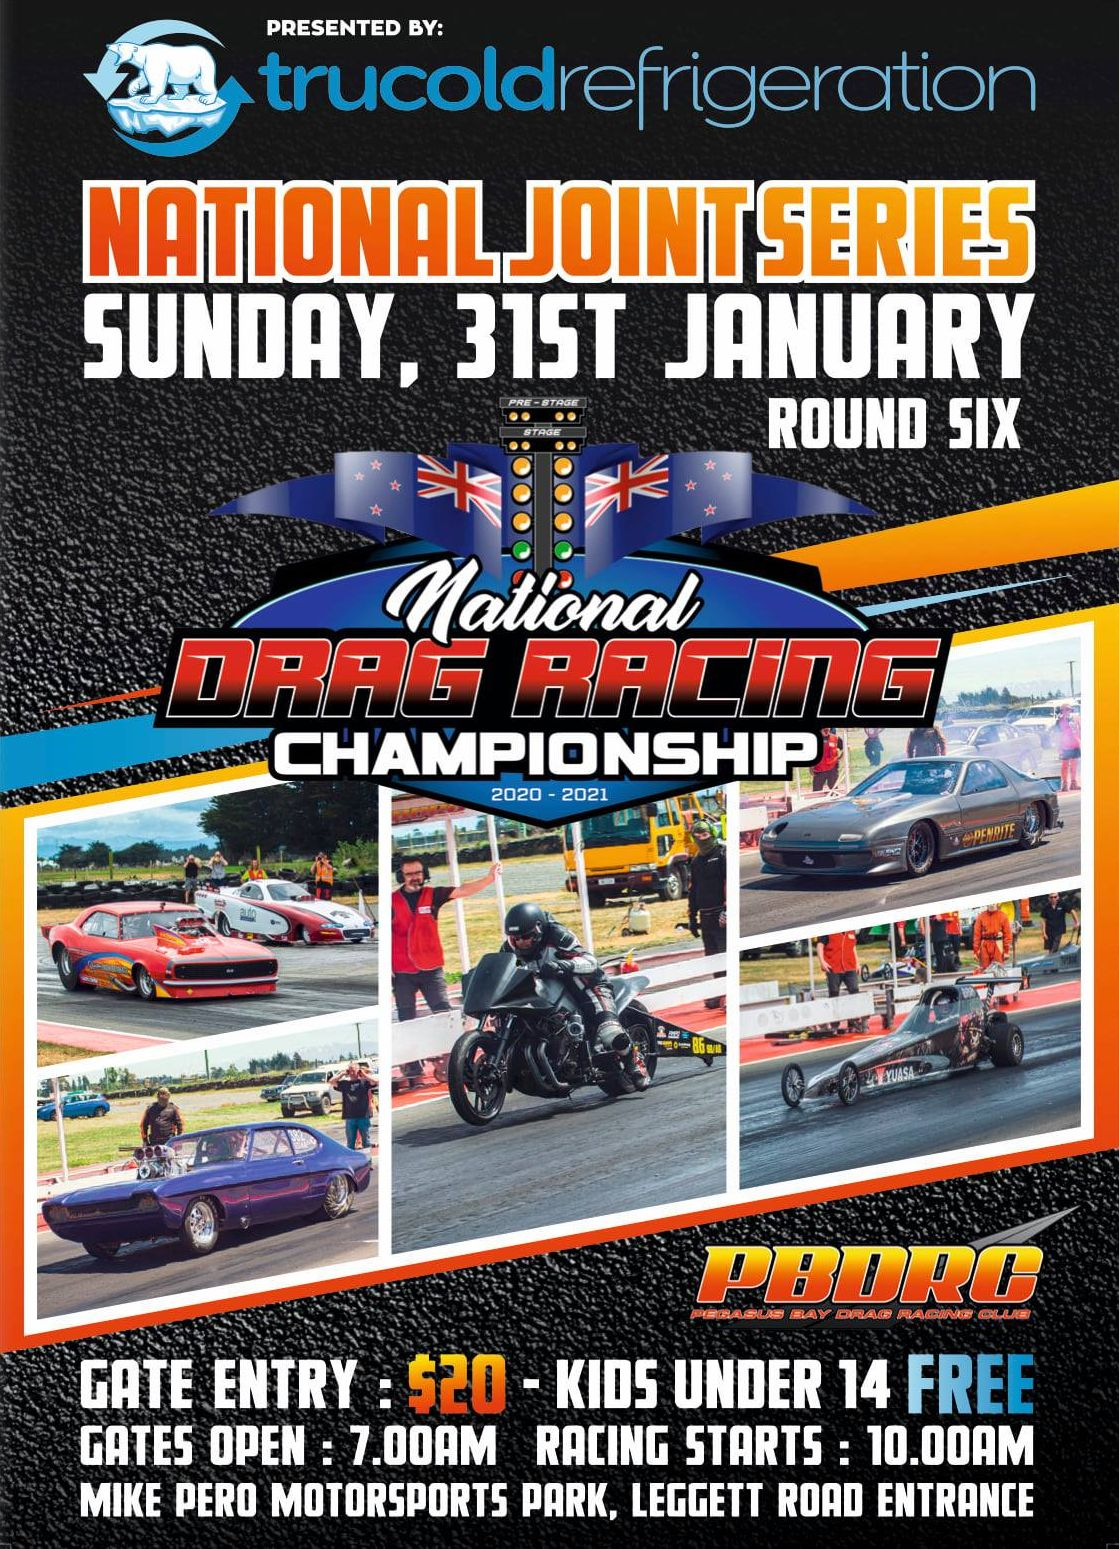 2020/21 National Drag Racing Series. Round 6 poster